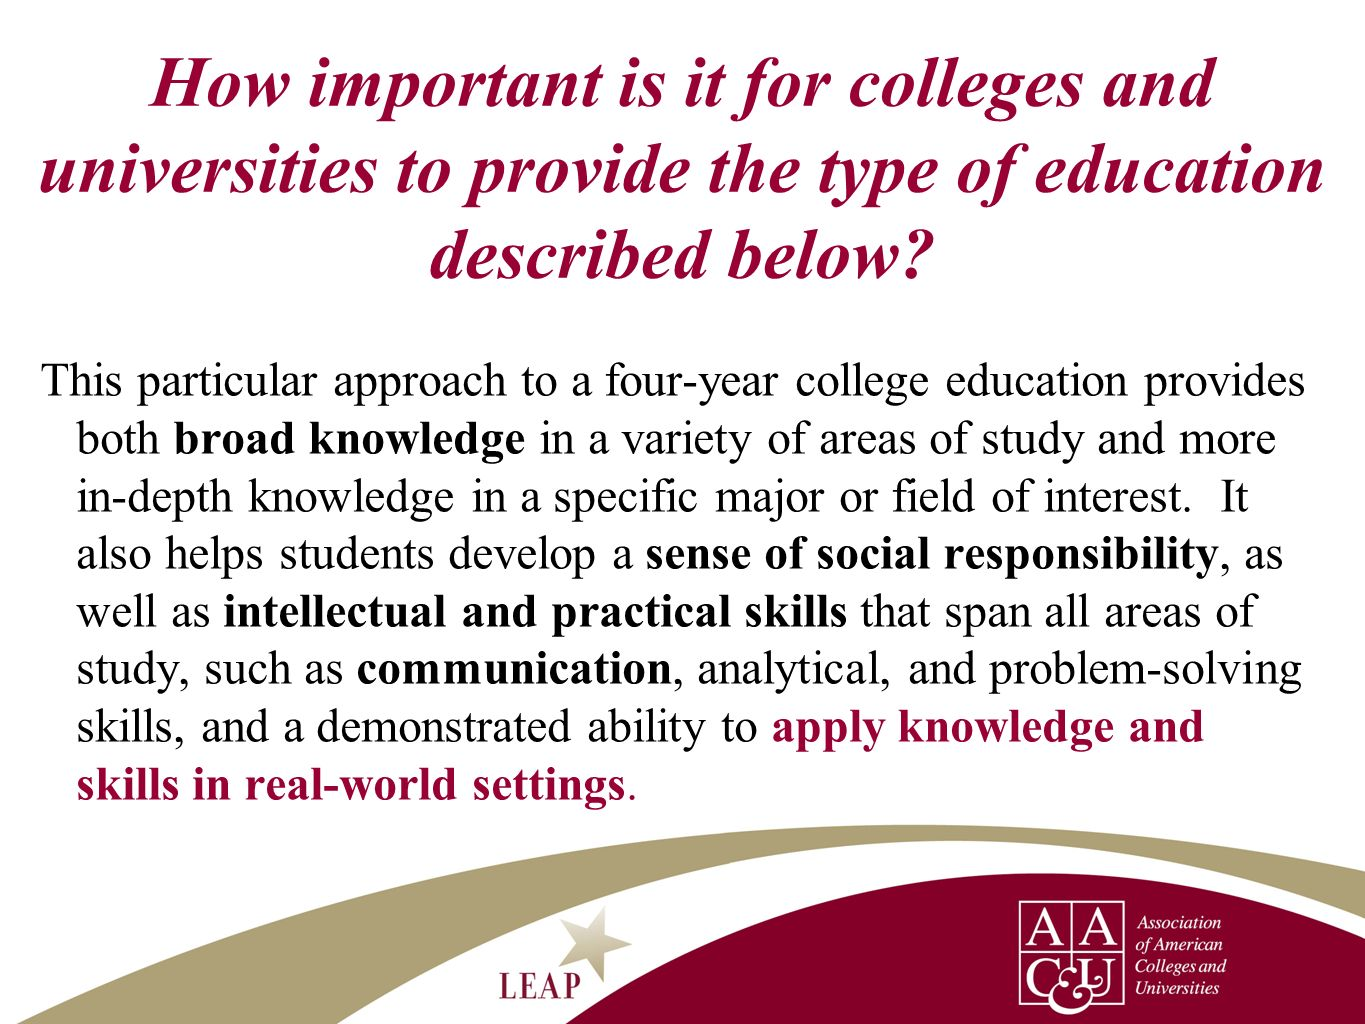 How important is it for colleges and universities to provide the type of education described below? This particular approach to a four-year college ed